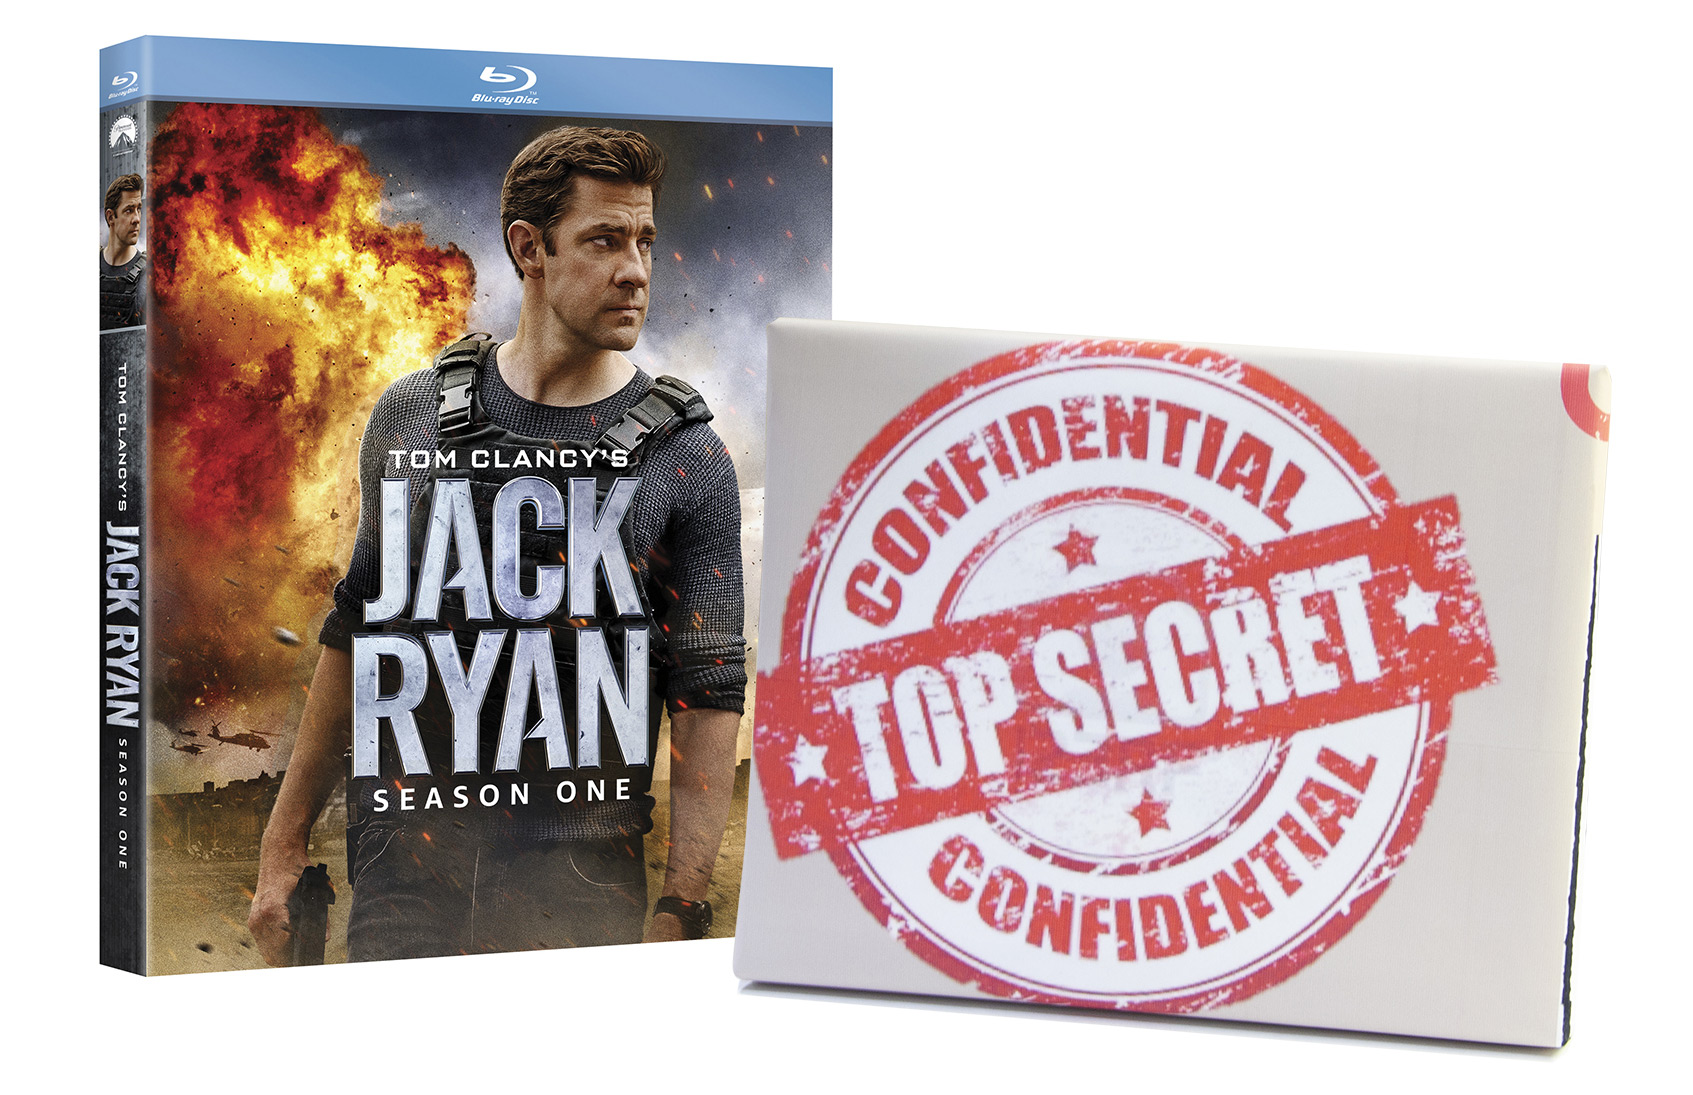 Tom Clancy's Jack Ryan: Season One giveaway